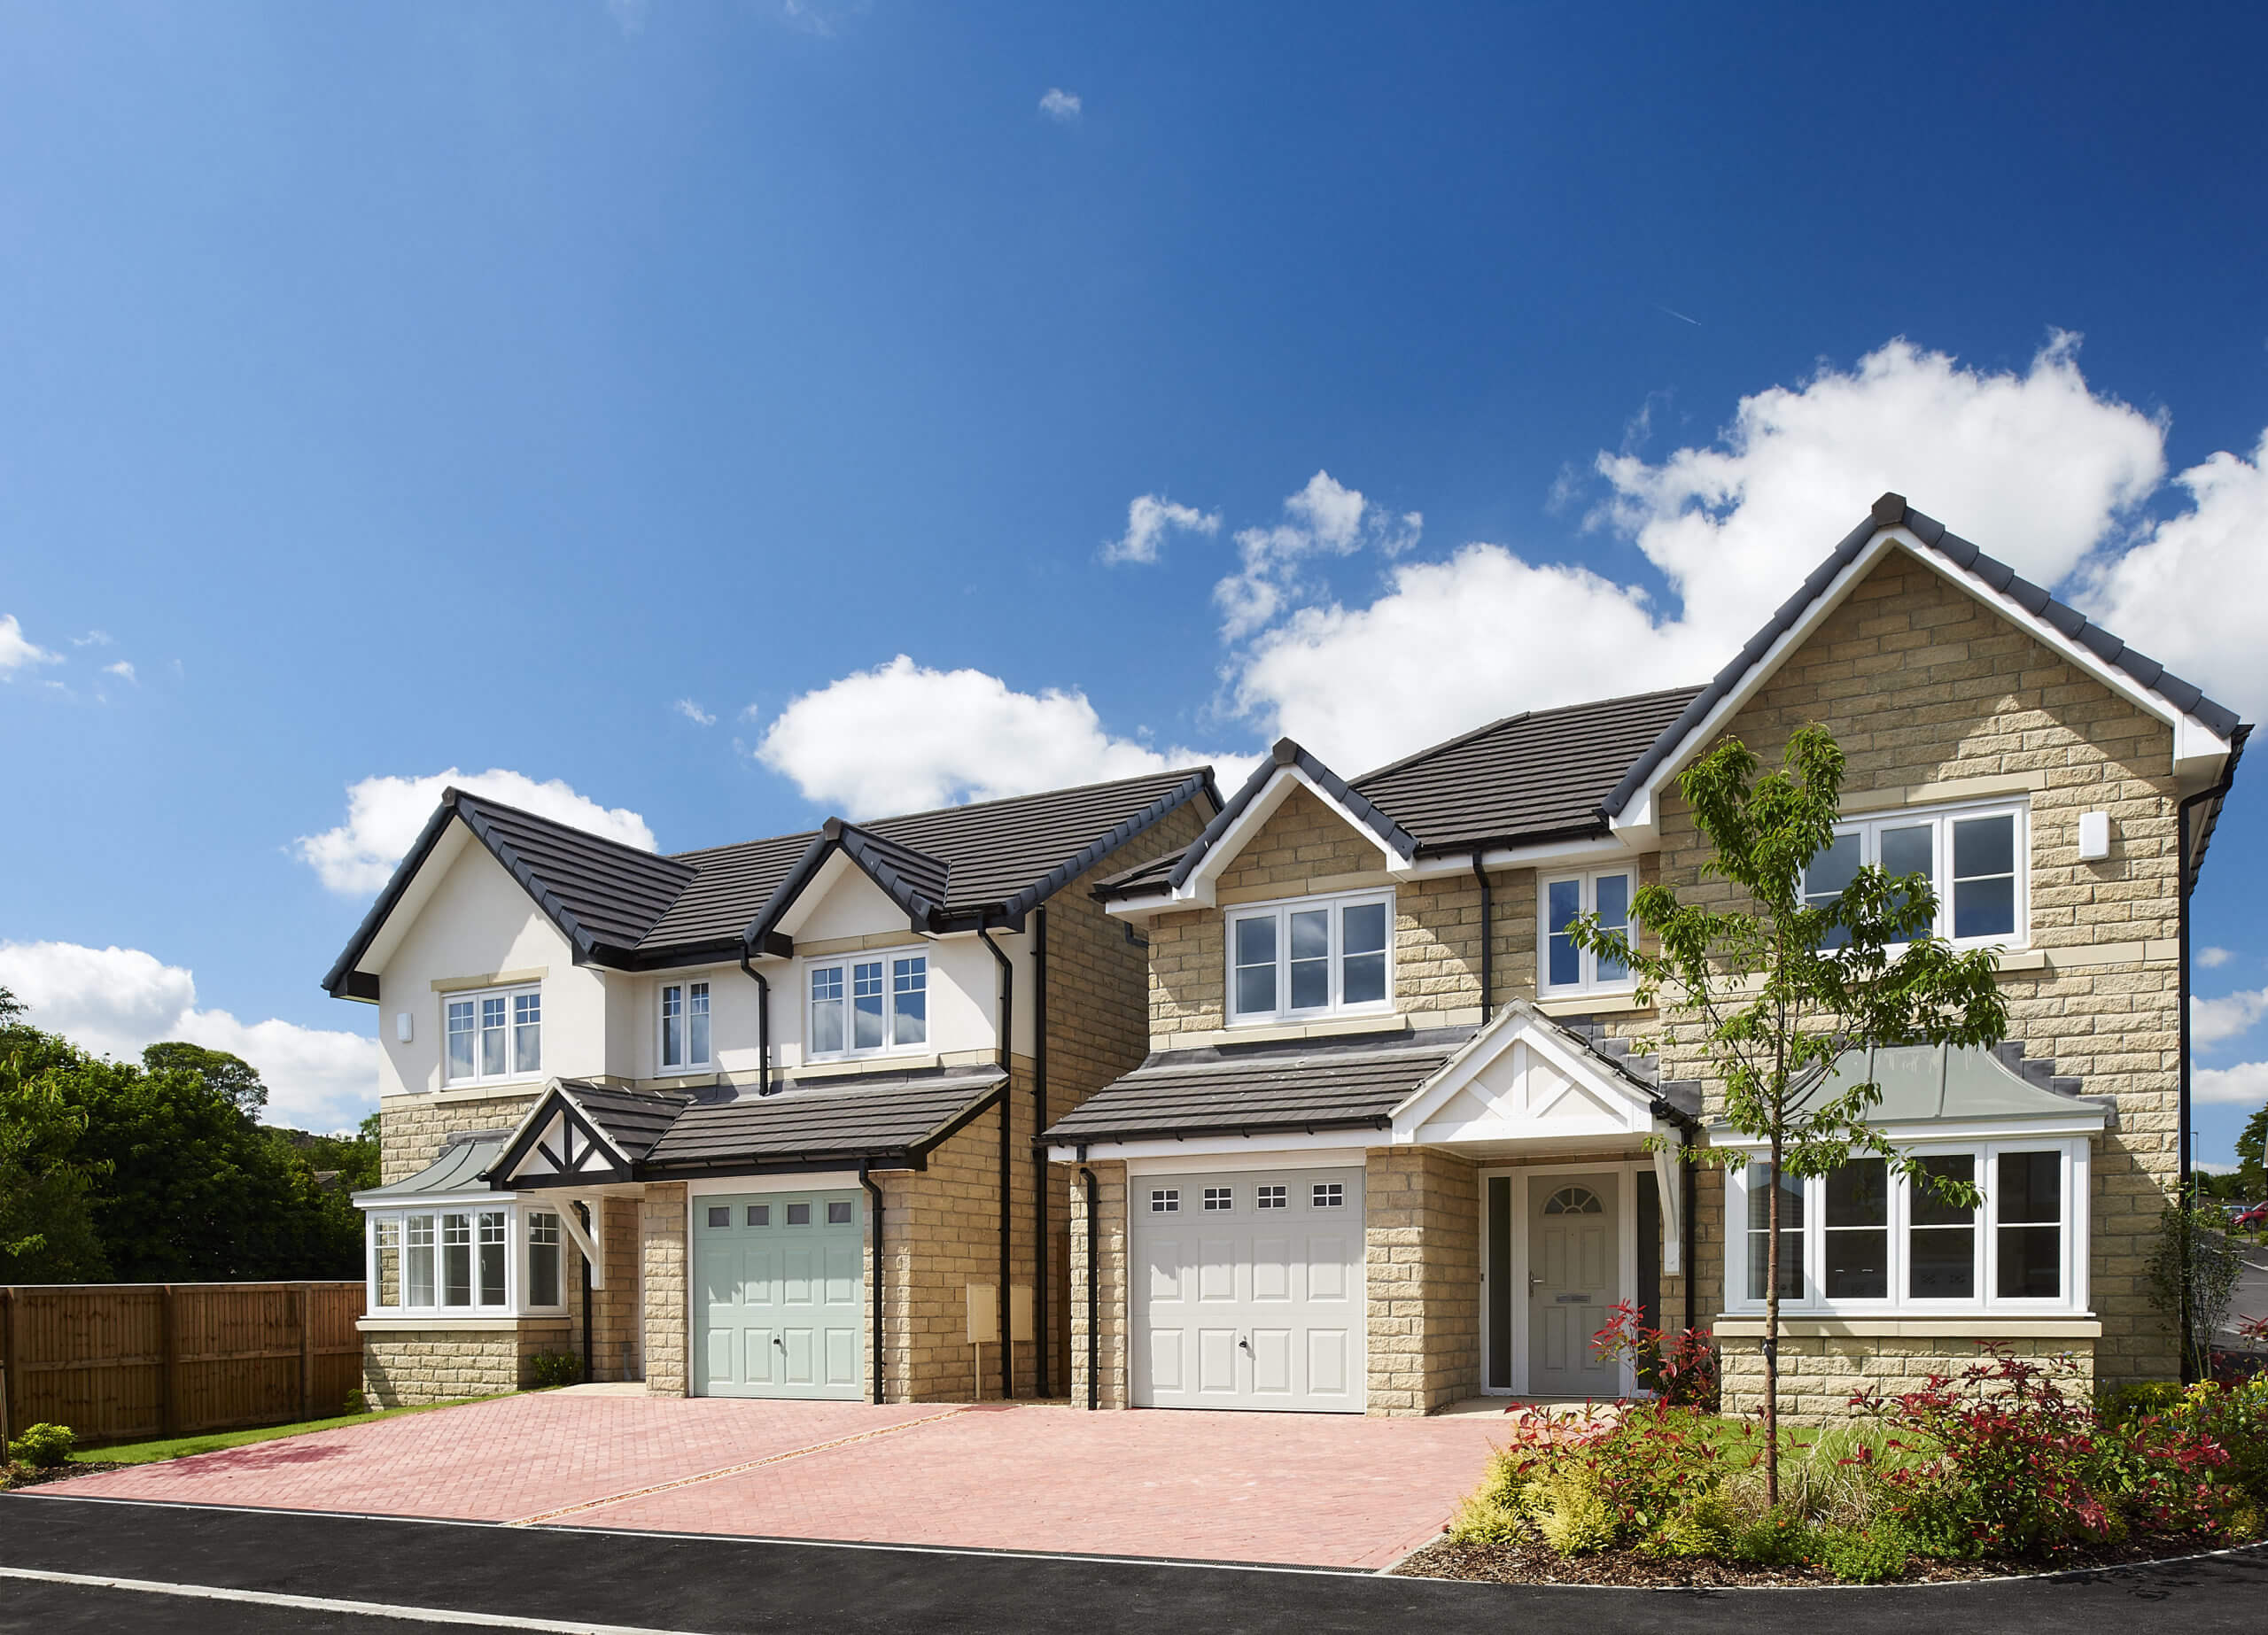 Jones Homes named as builder behind best small development in West Yorkshire